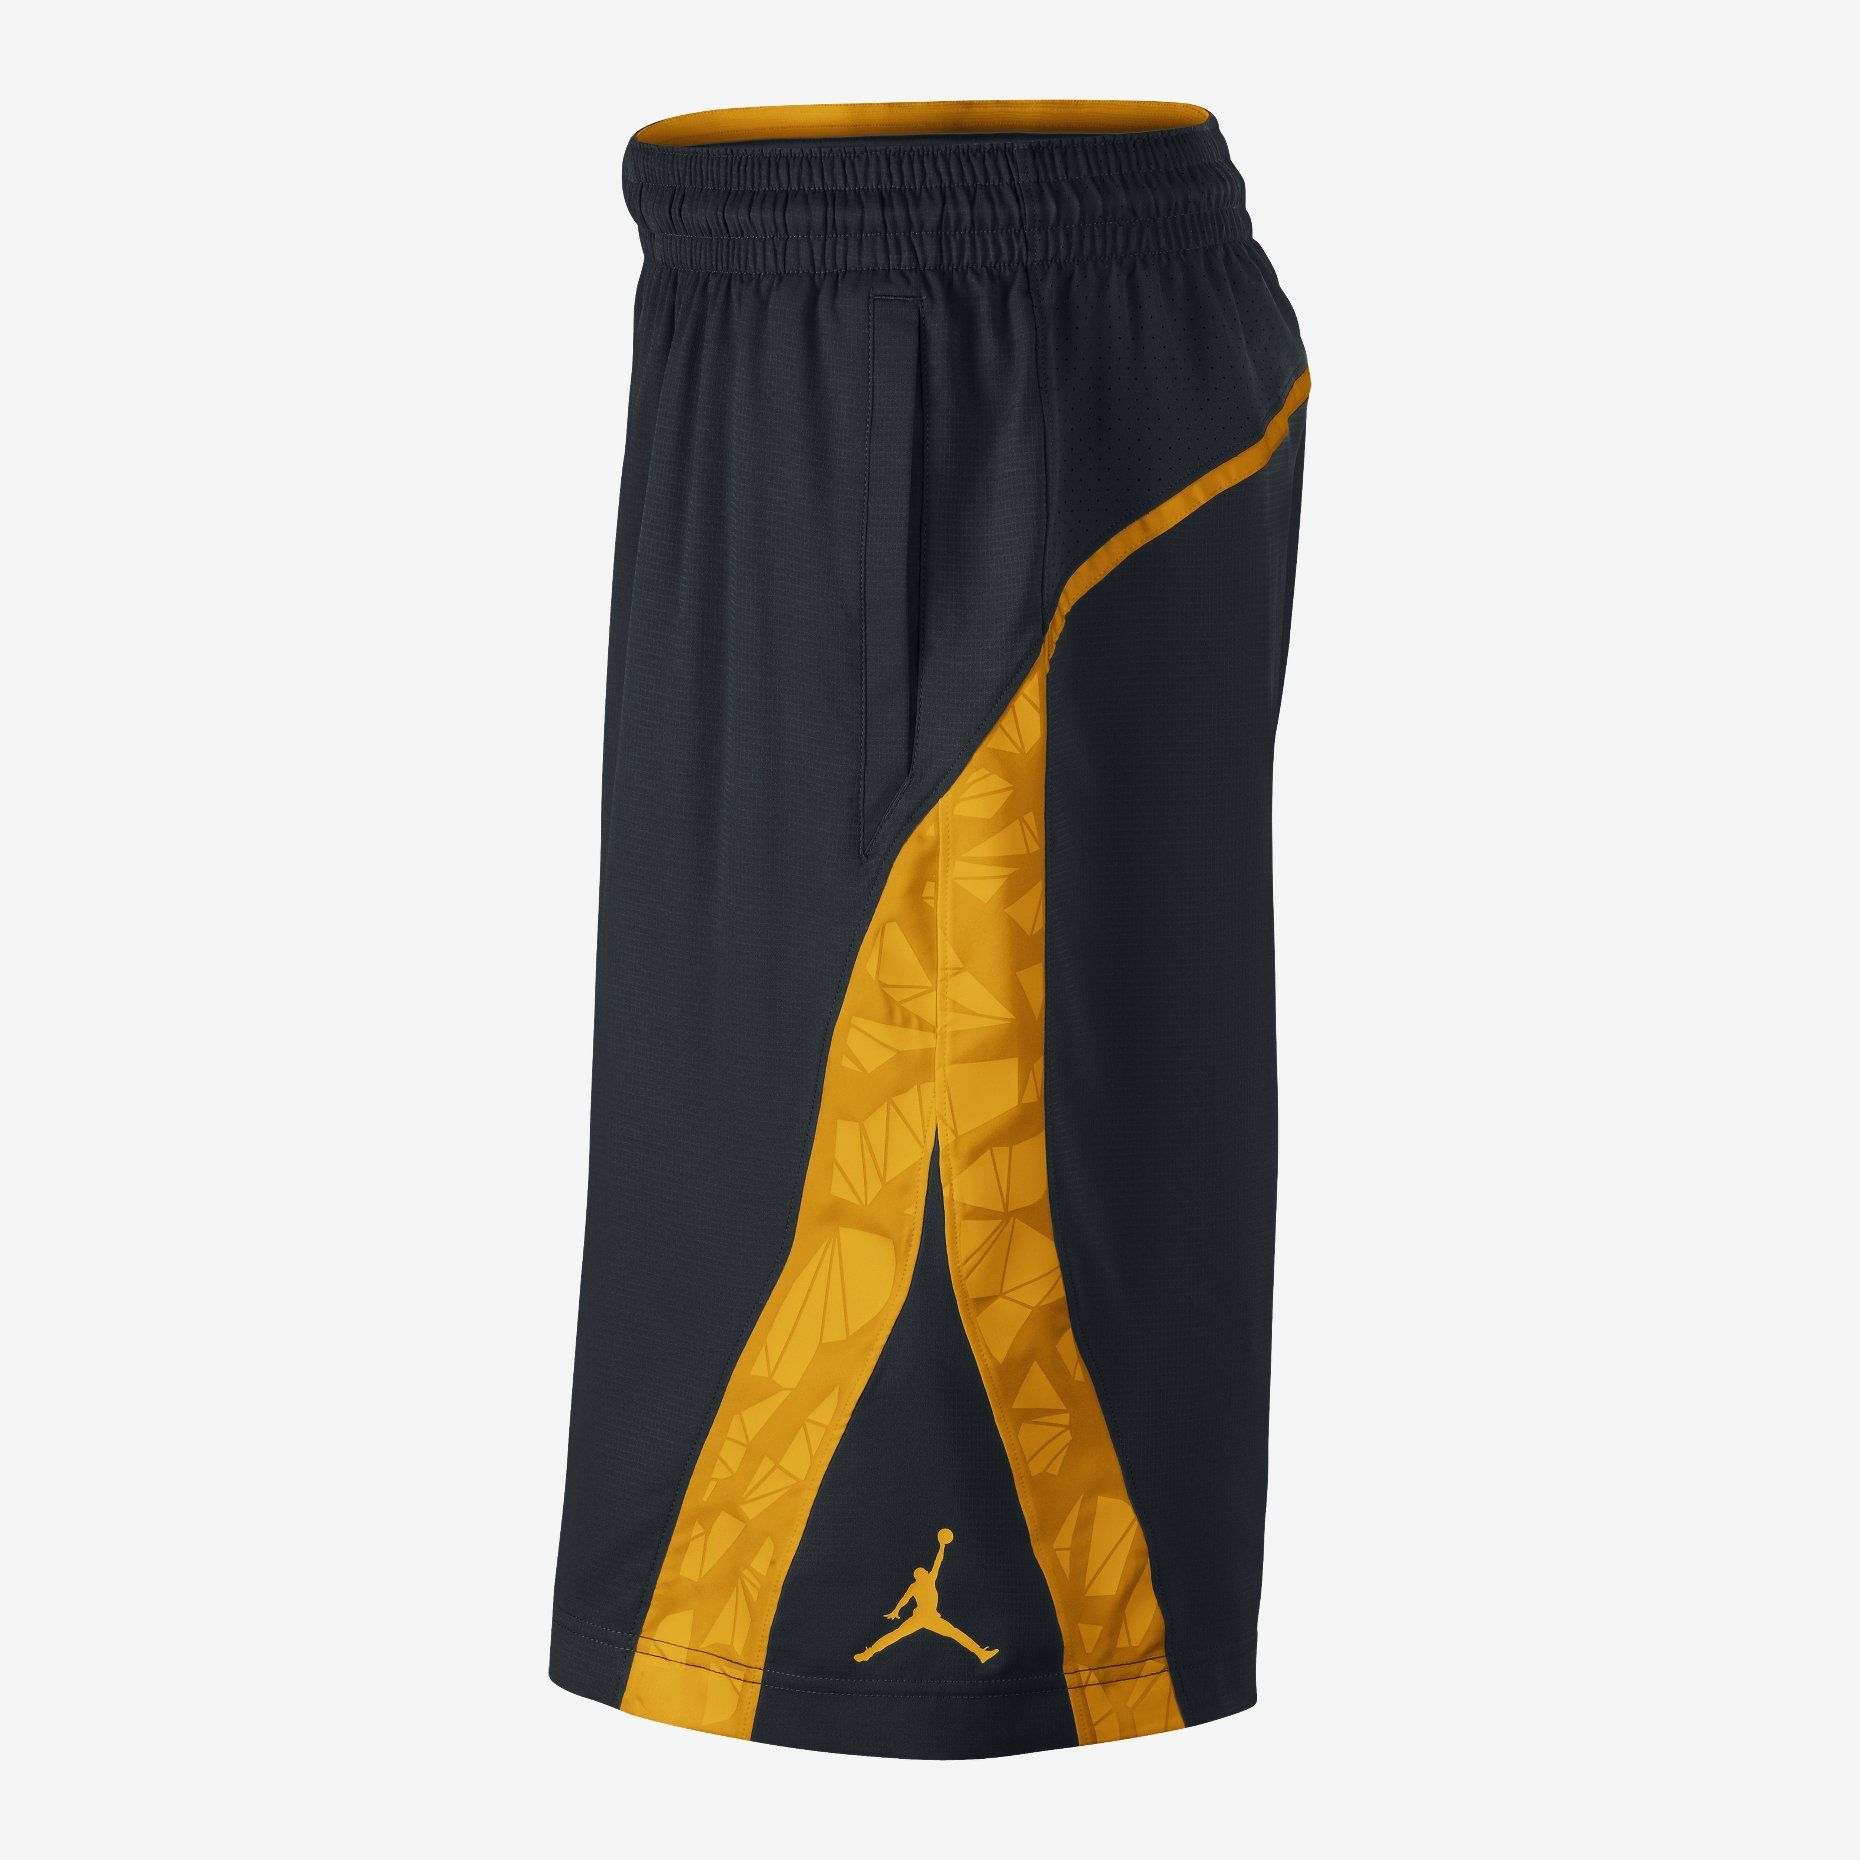 a04a749a20ed8f Nike Store. Jordan S.Flight Men s Basketball Shorts